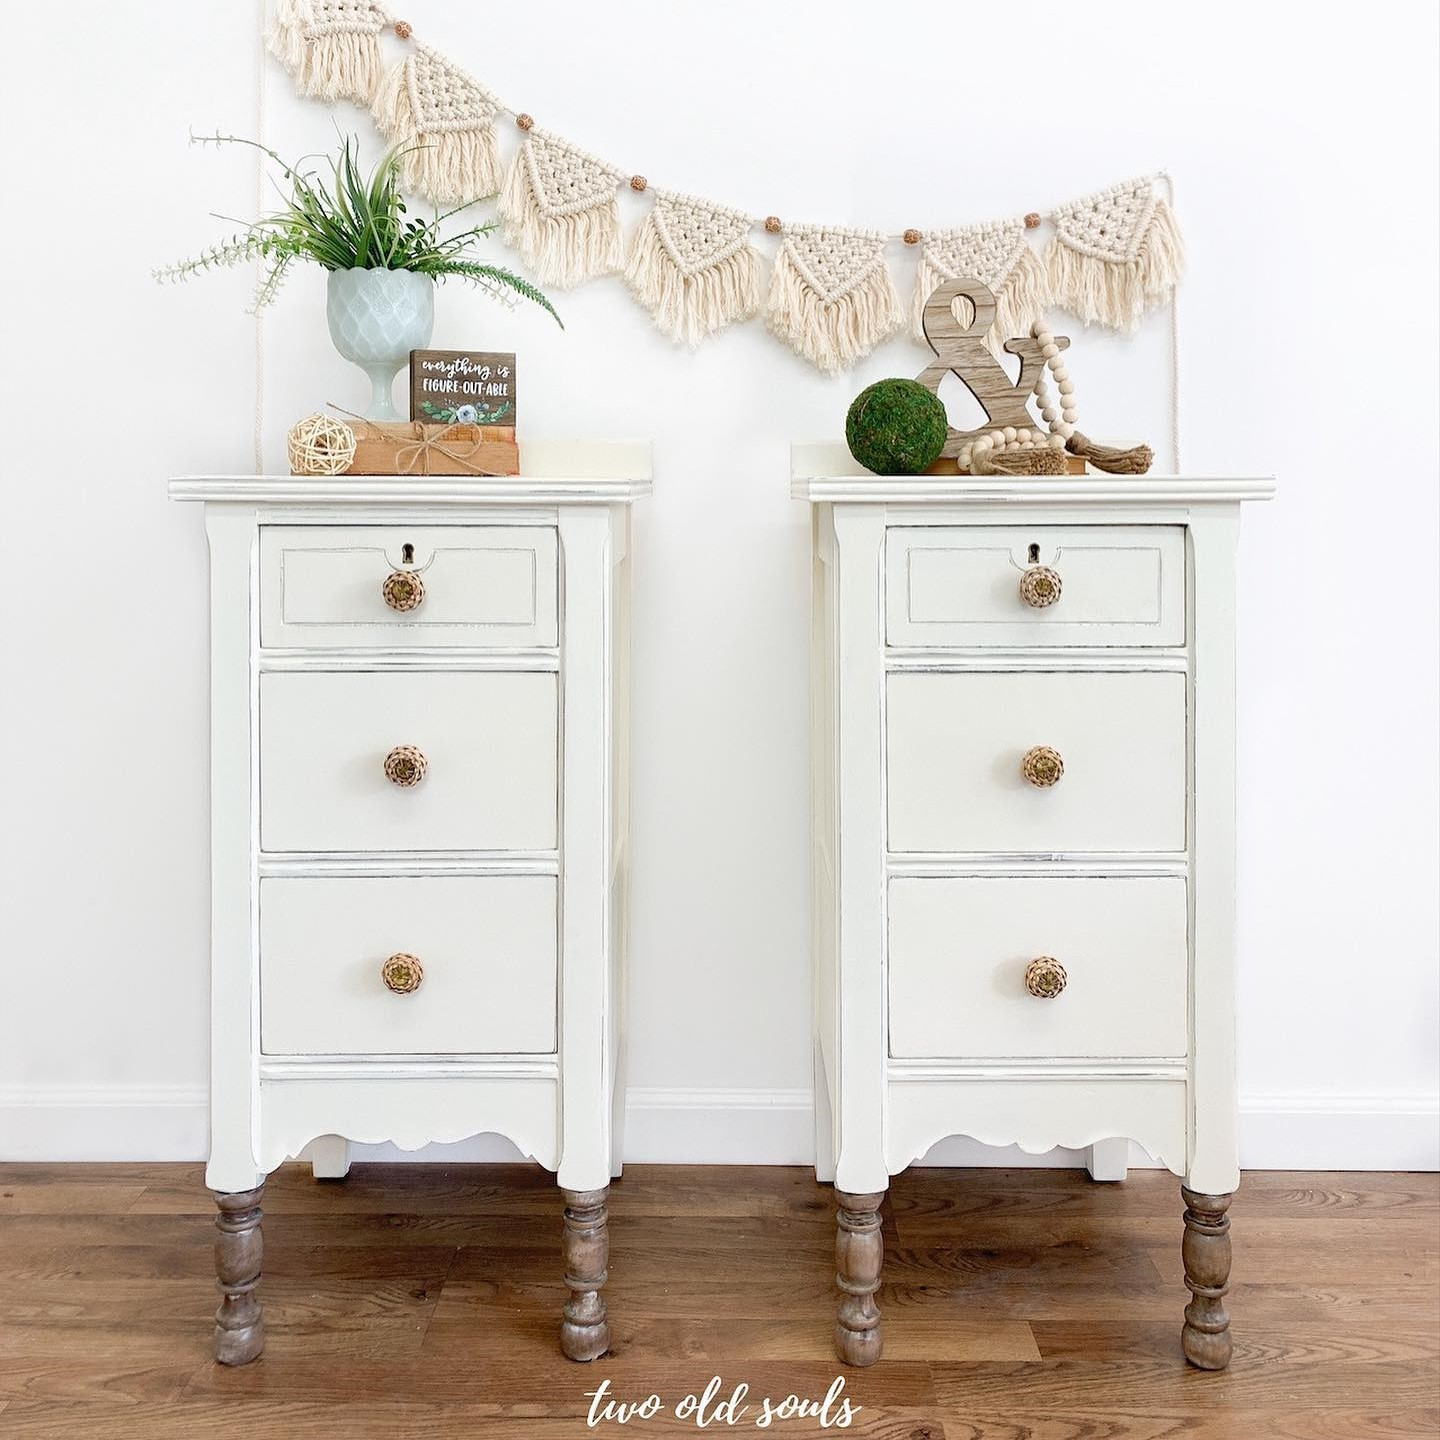 Accent Tables in Crinoline with Stained Wood Legs